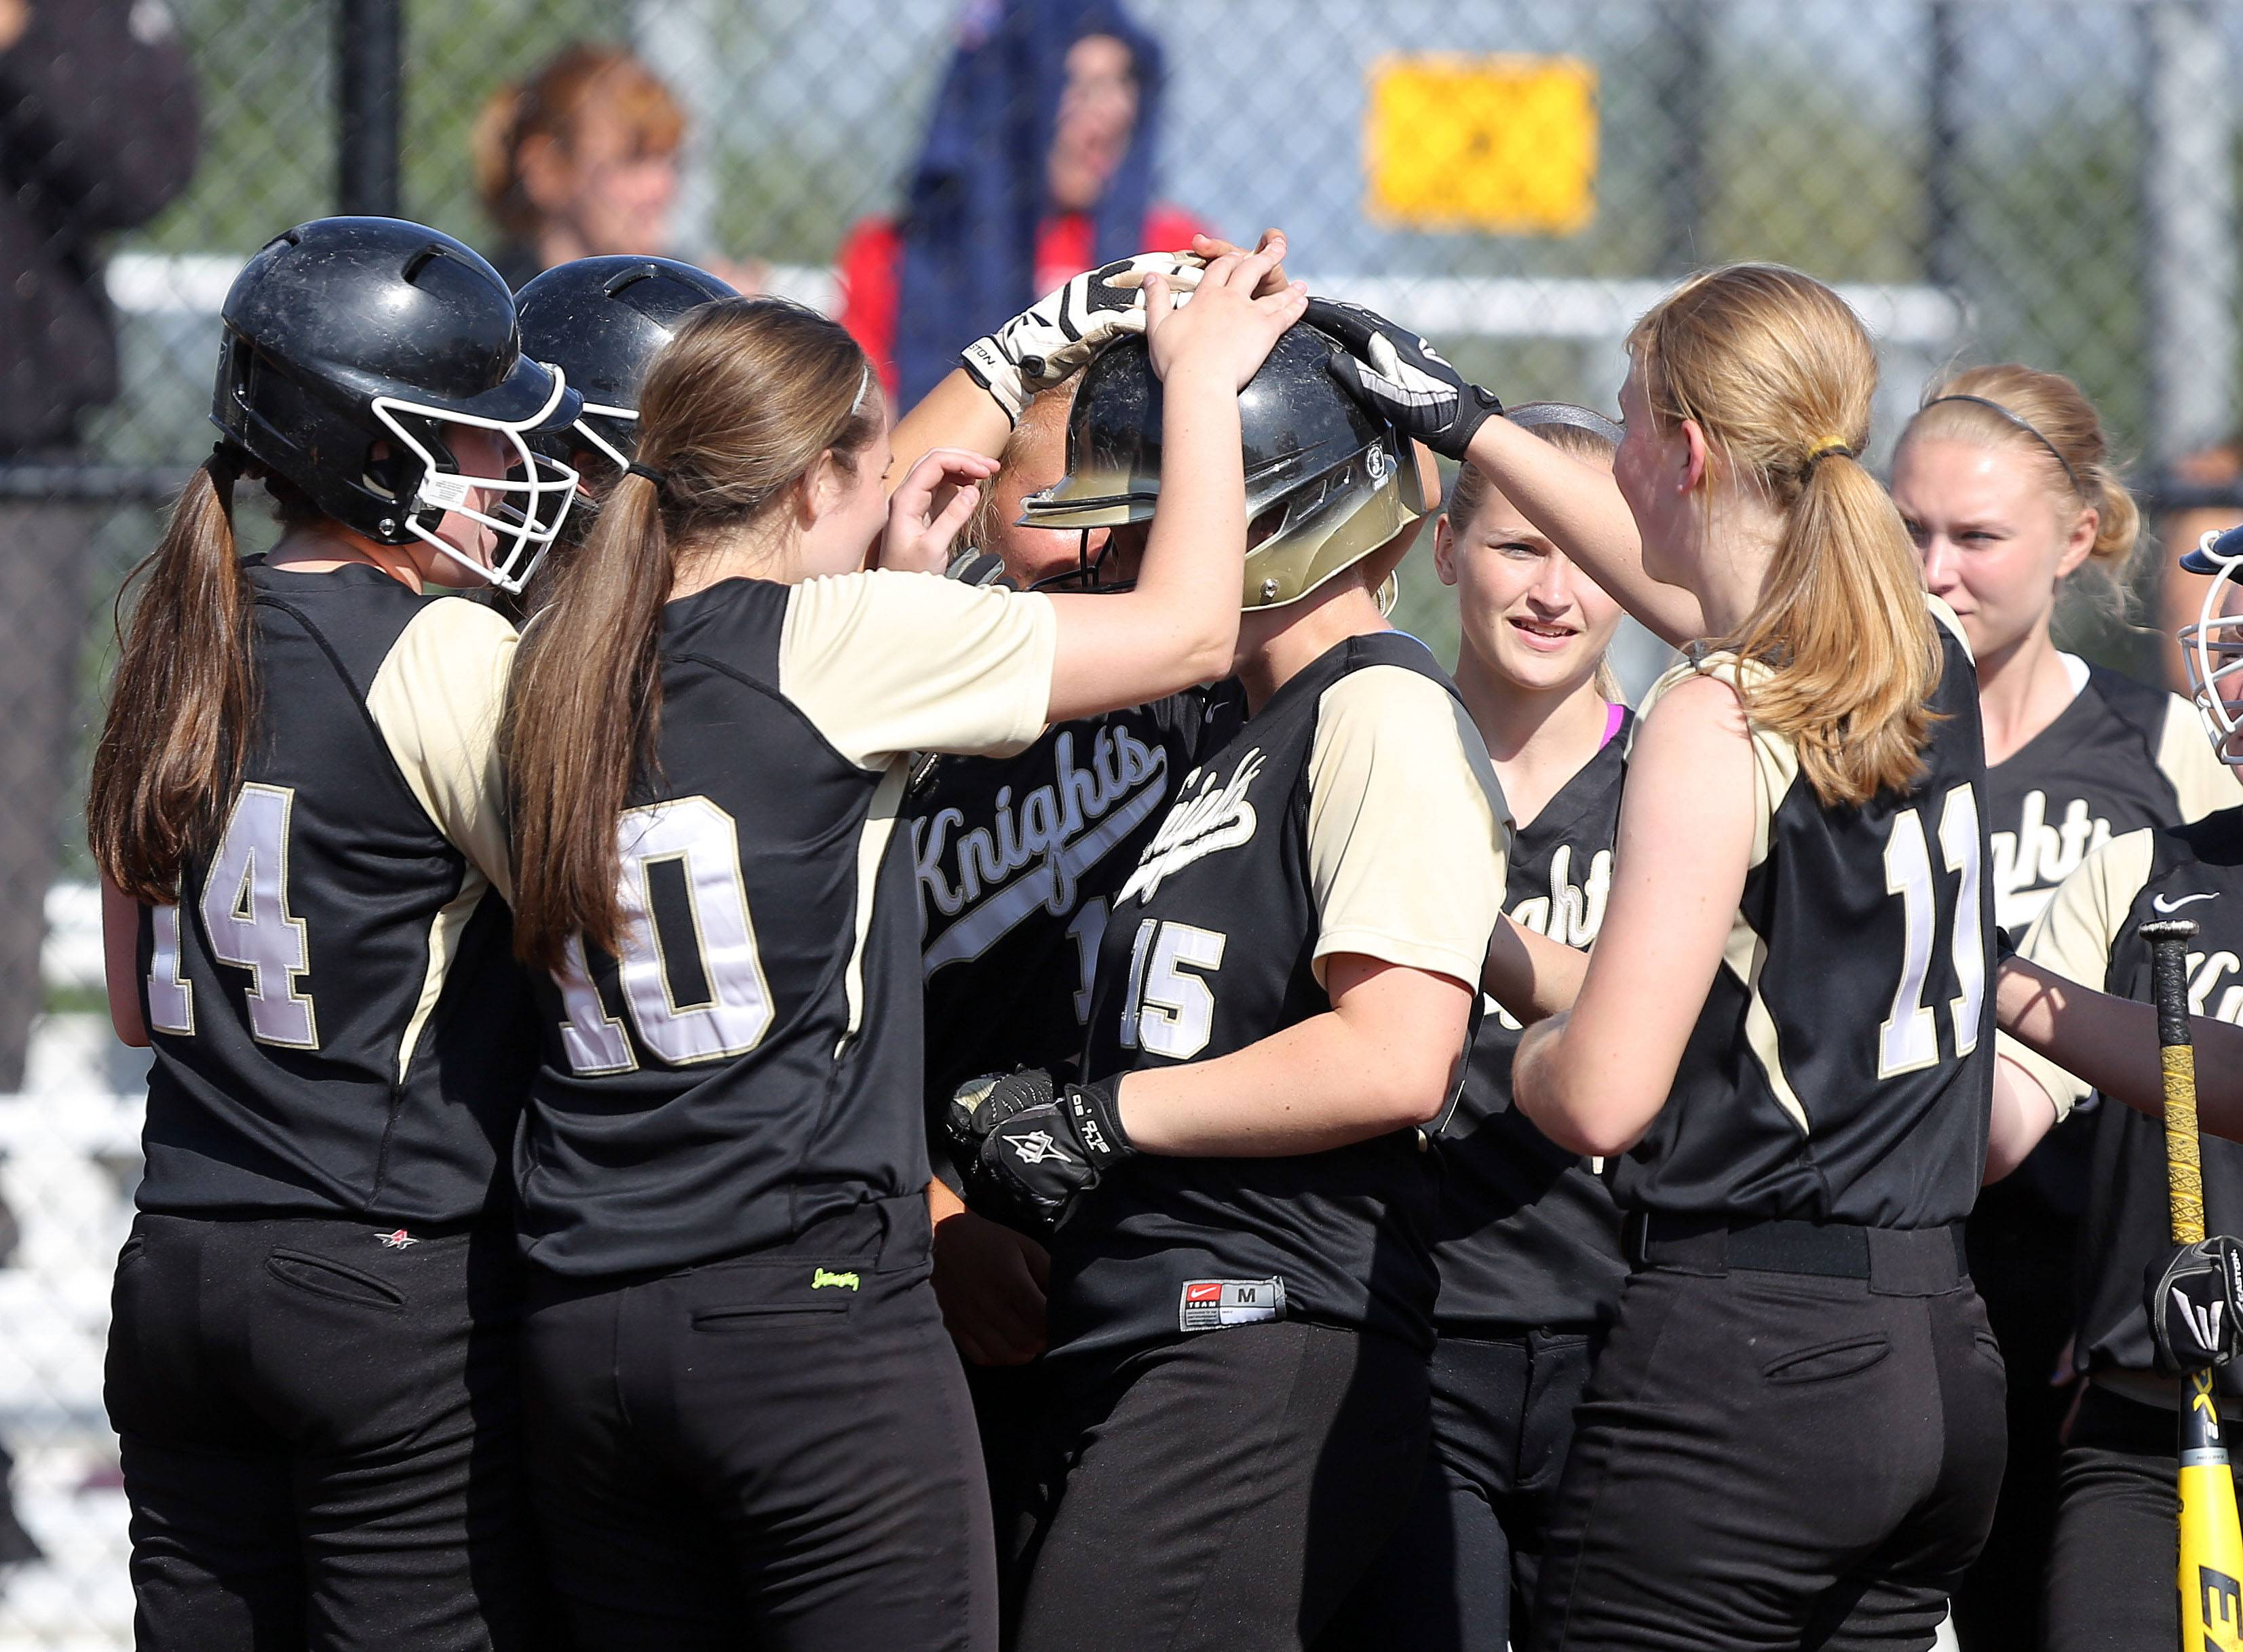 Grayslake North players meet Nikki Livengood at the plate after her home run against Round Lake on Wednesday at Grayslake North.